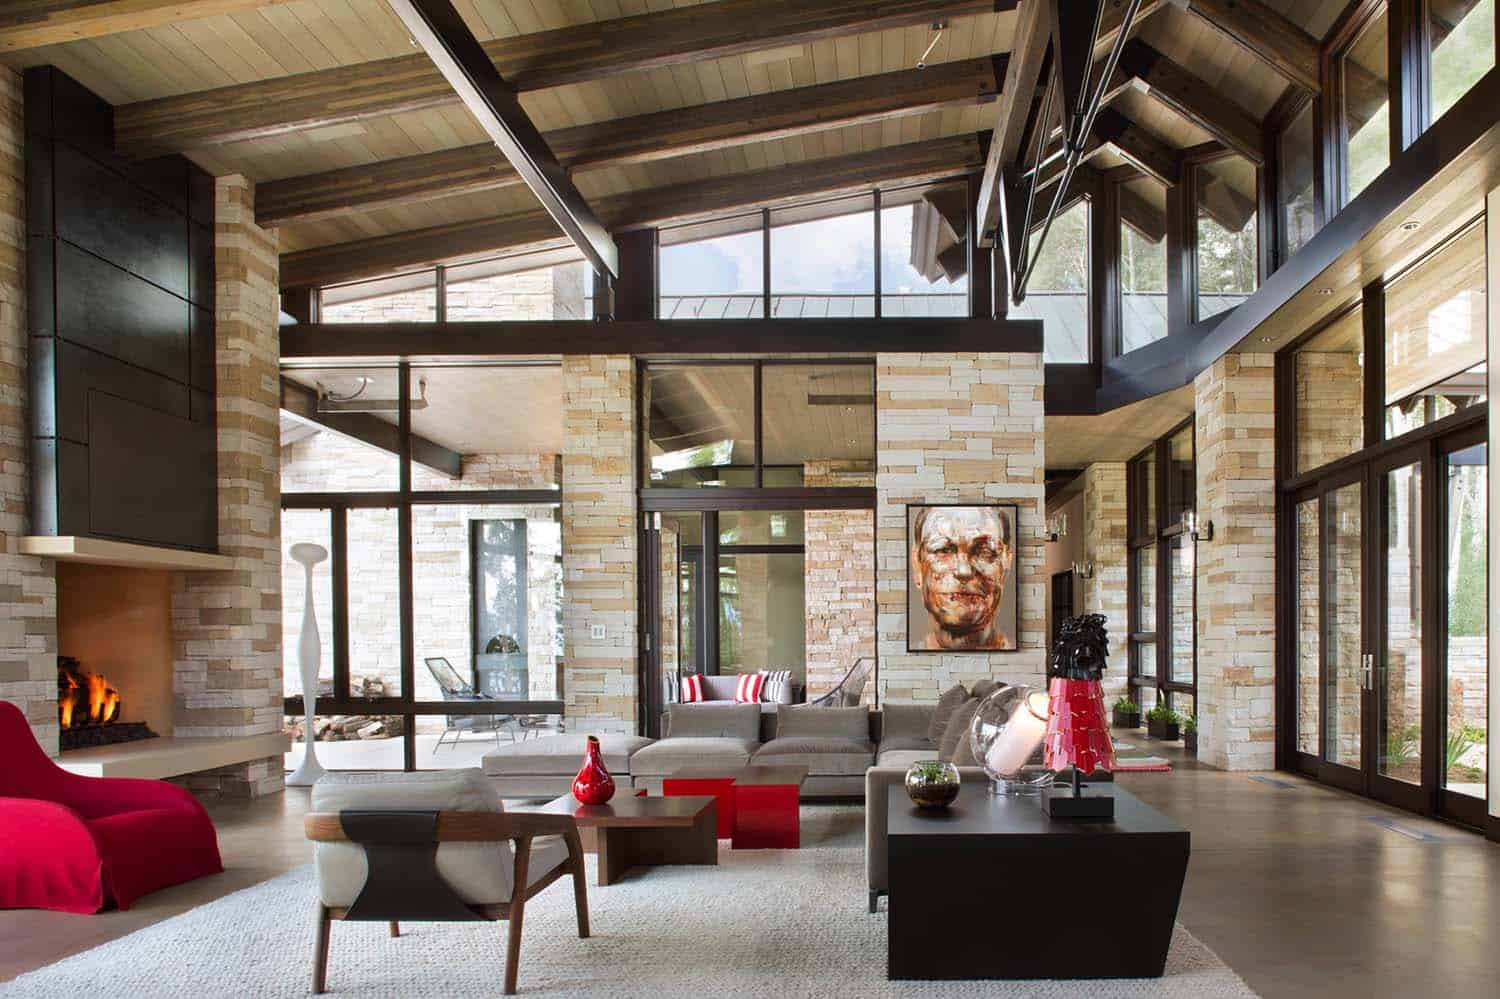 Mountain Contemporary Home-RKD Architects-03-1 Kindesign